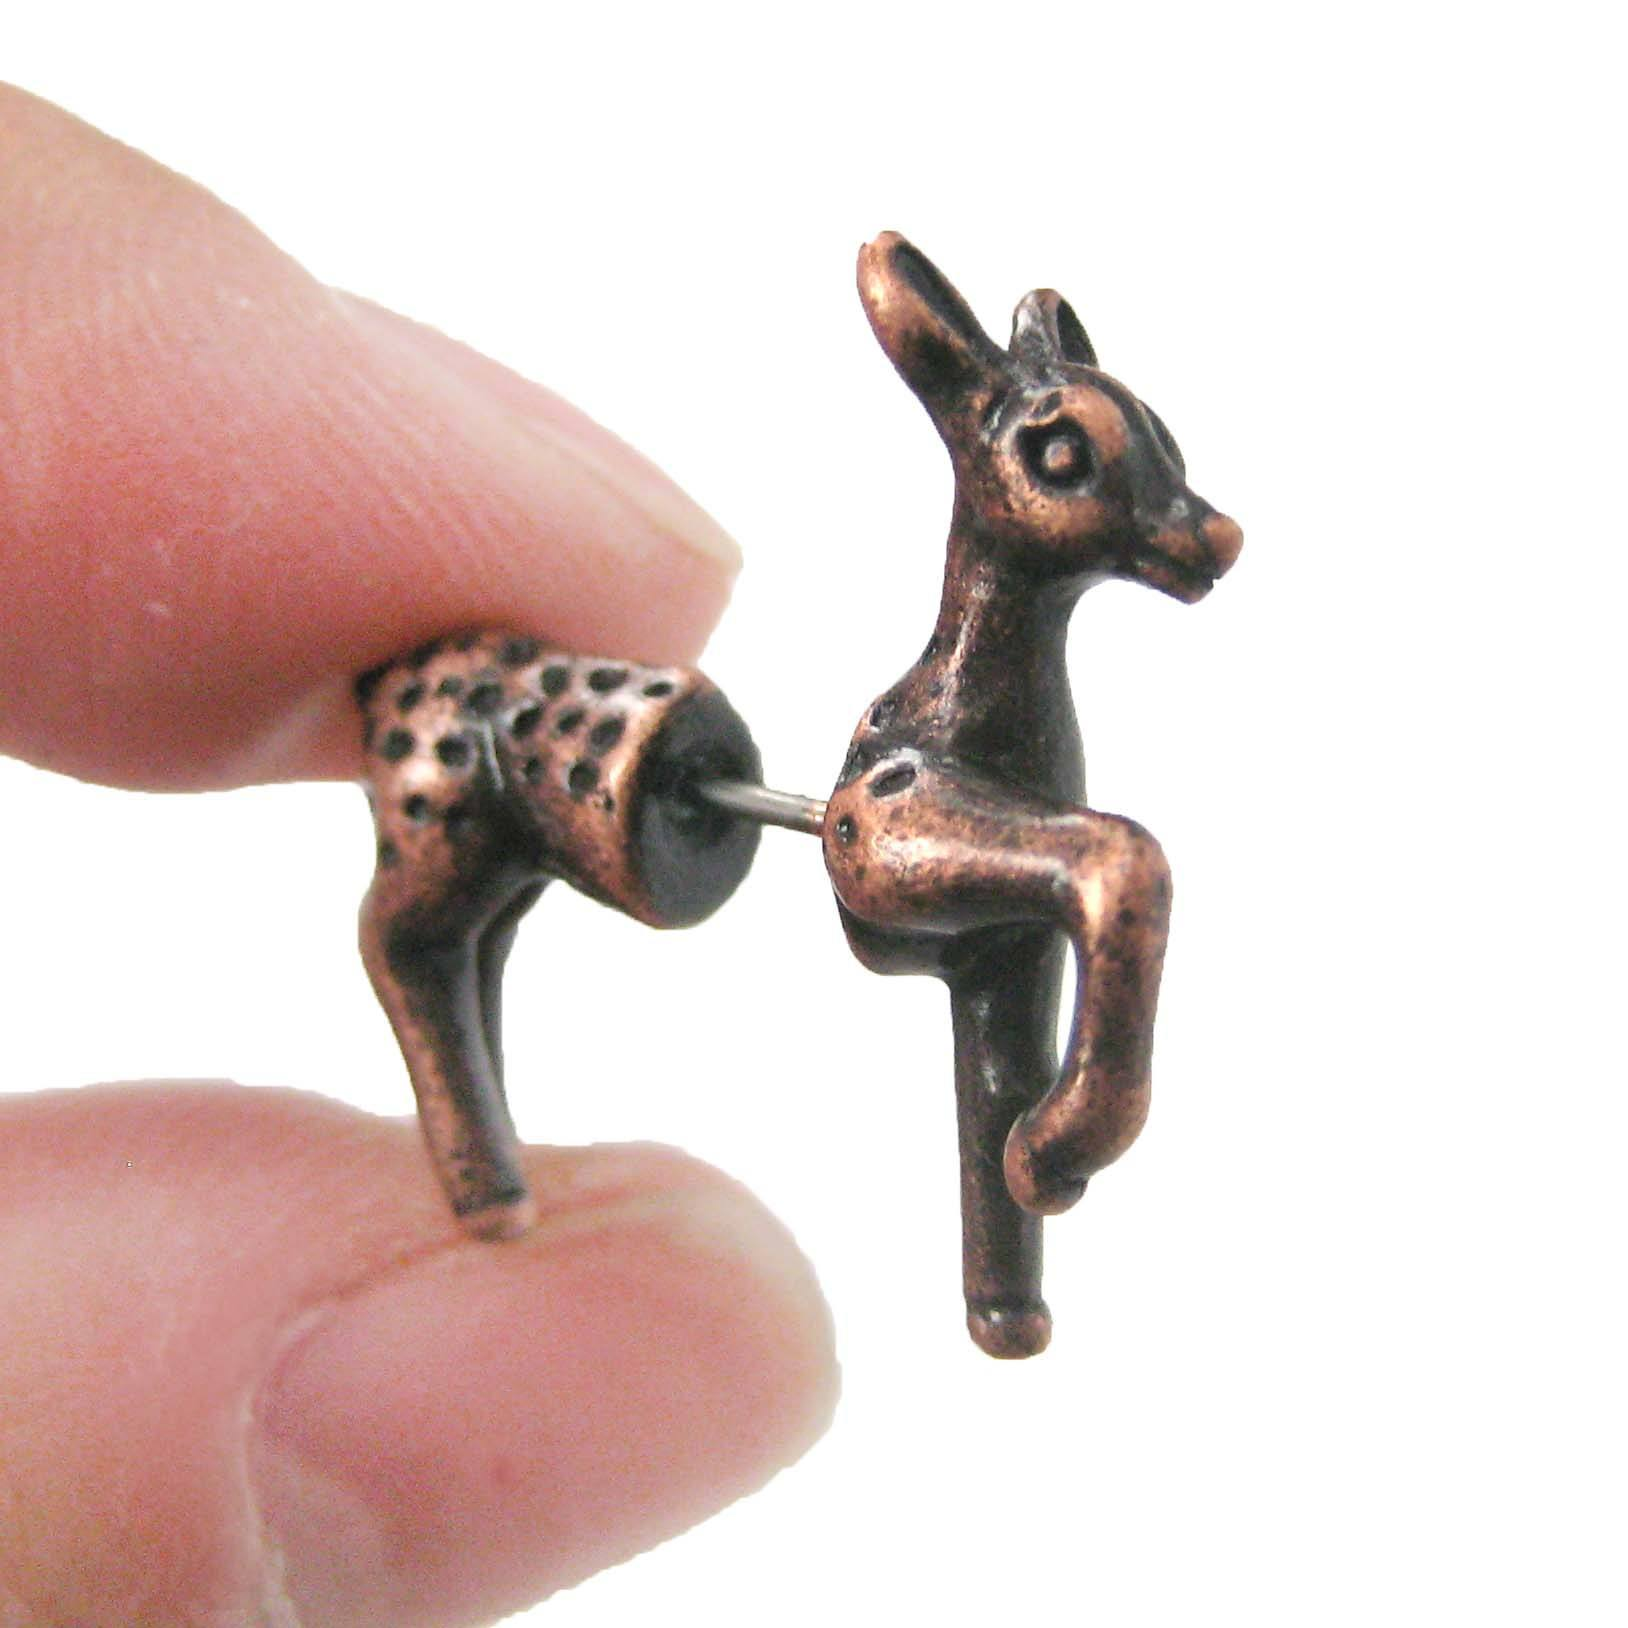 Fake Gauge Earrings: Bambi Deer Animal Faux Plug Earrings in Copper